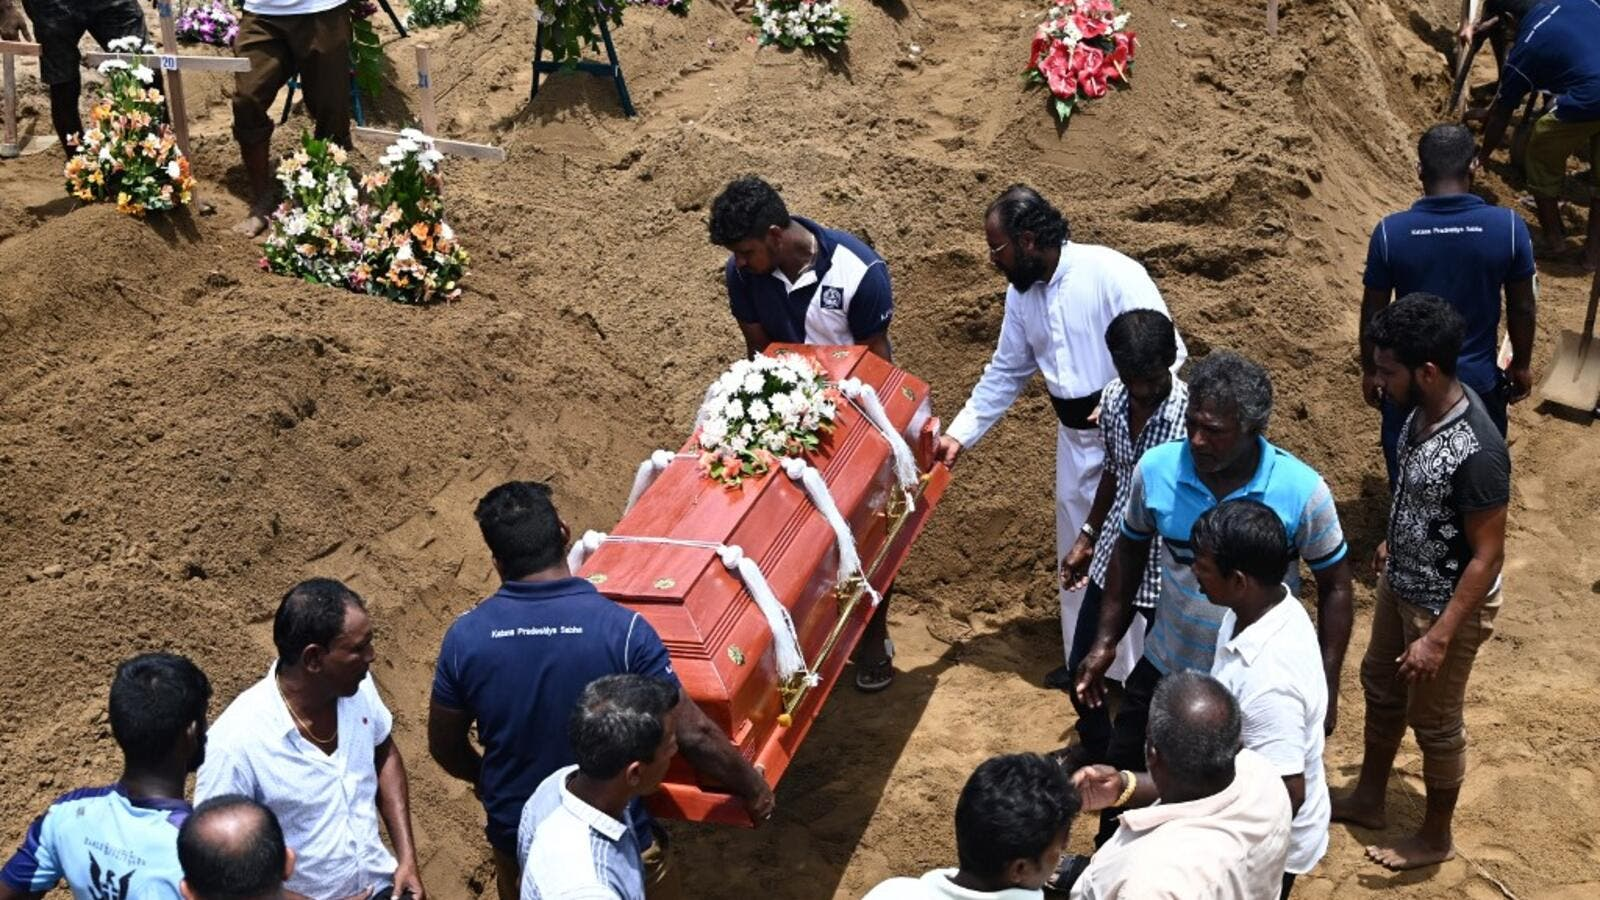 Relatives (R) watch as workers place the coffin of a bomb blast victim during a burial ceremony at a cemetery in Negombo on April 23, 2019. (AFP/ File)